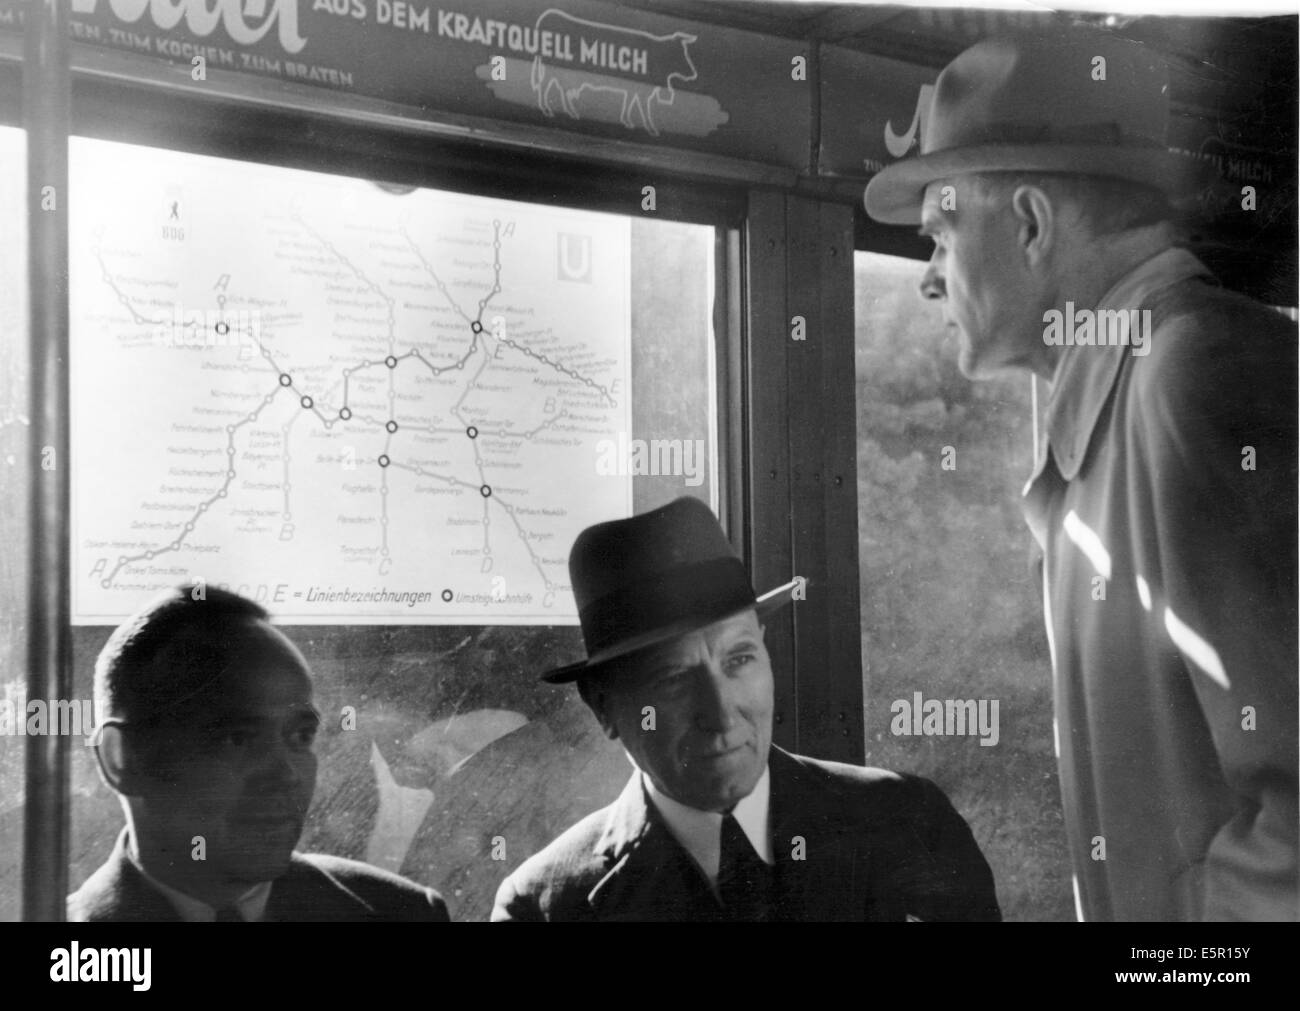 Berlin Subway Map Poster.Passengers Look At A Map Of The Berlin Metro In A Glass Case In